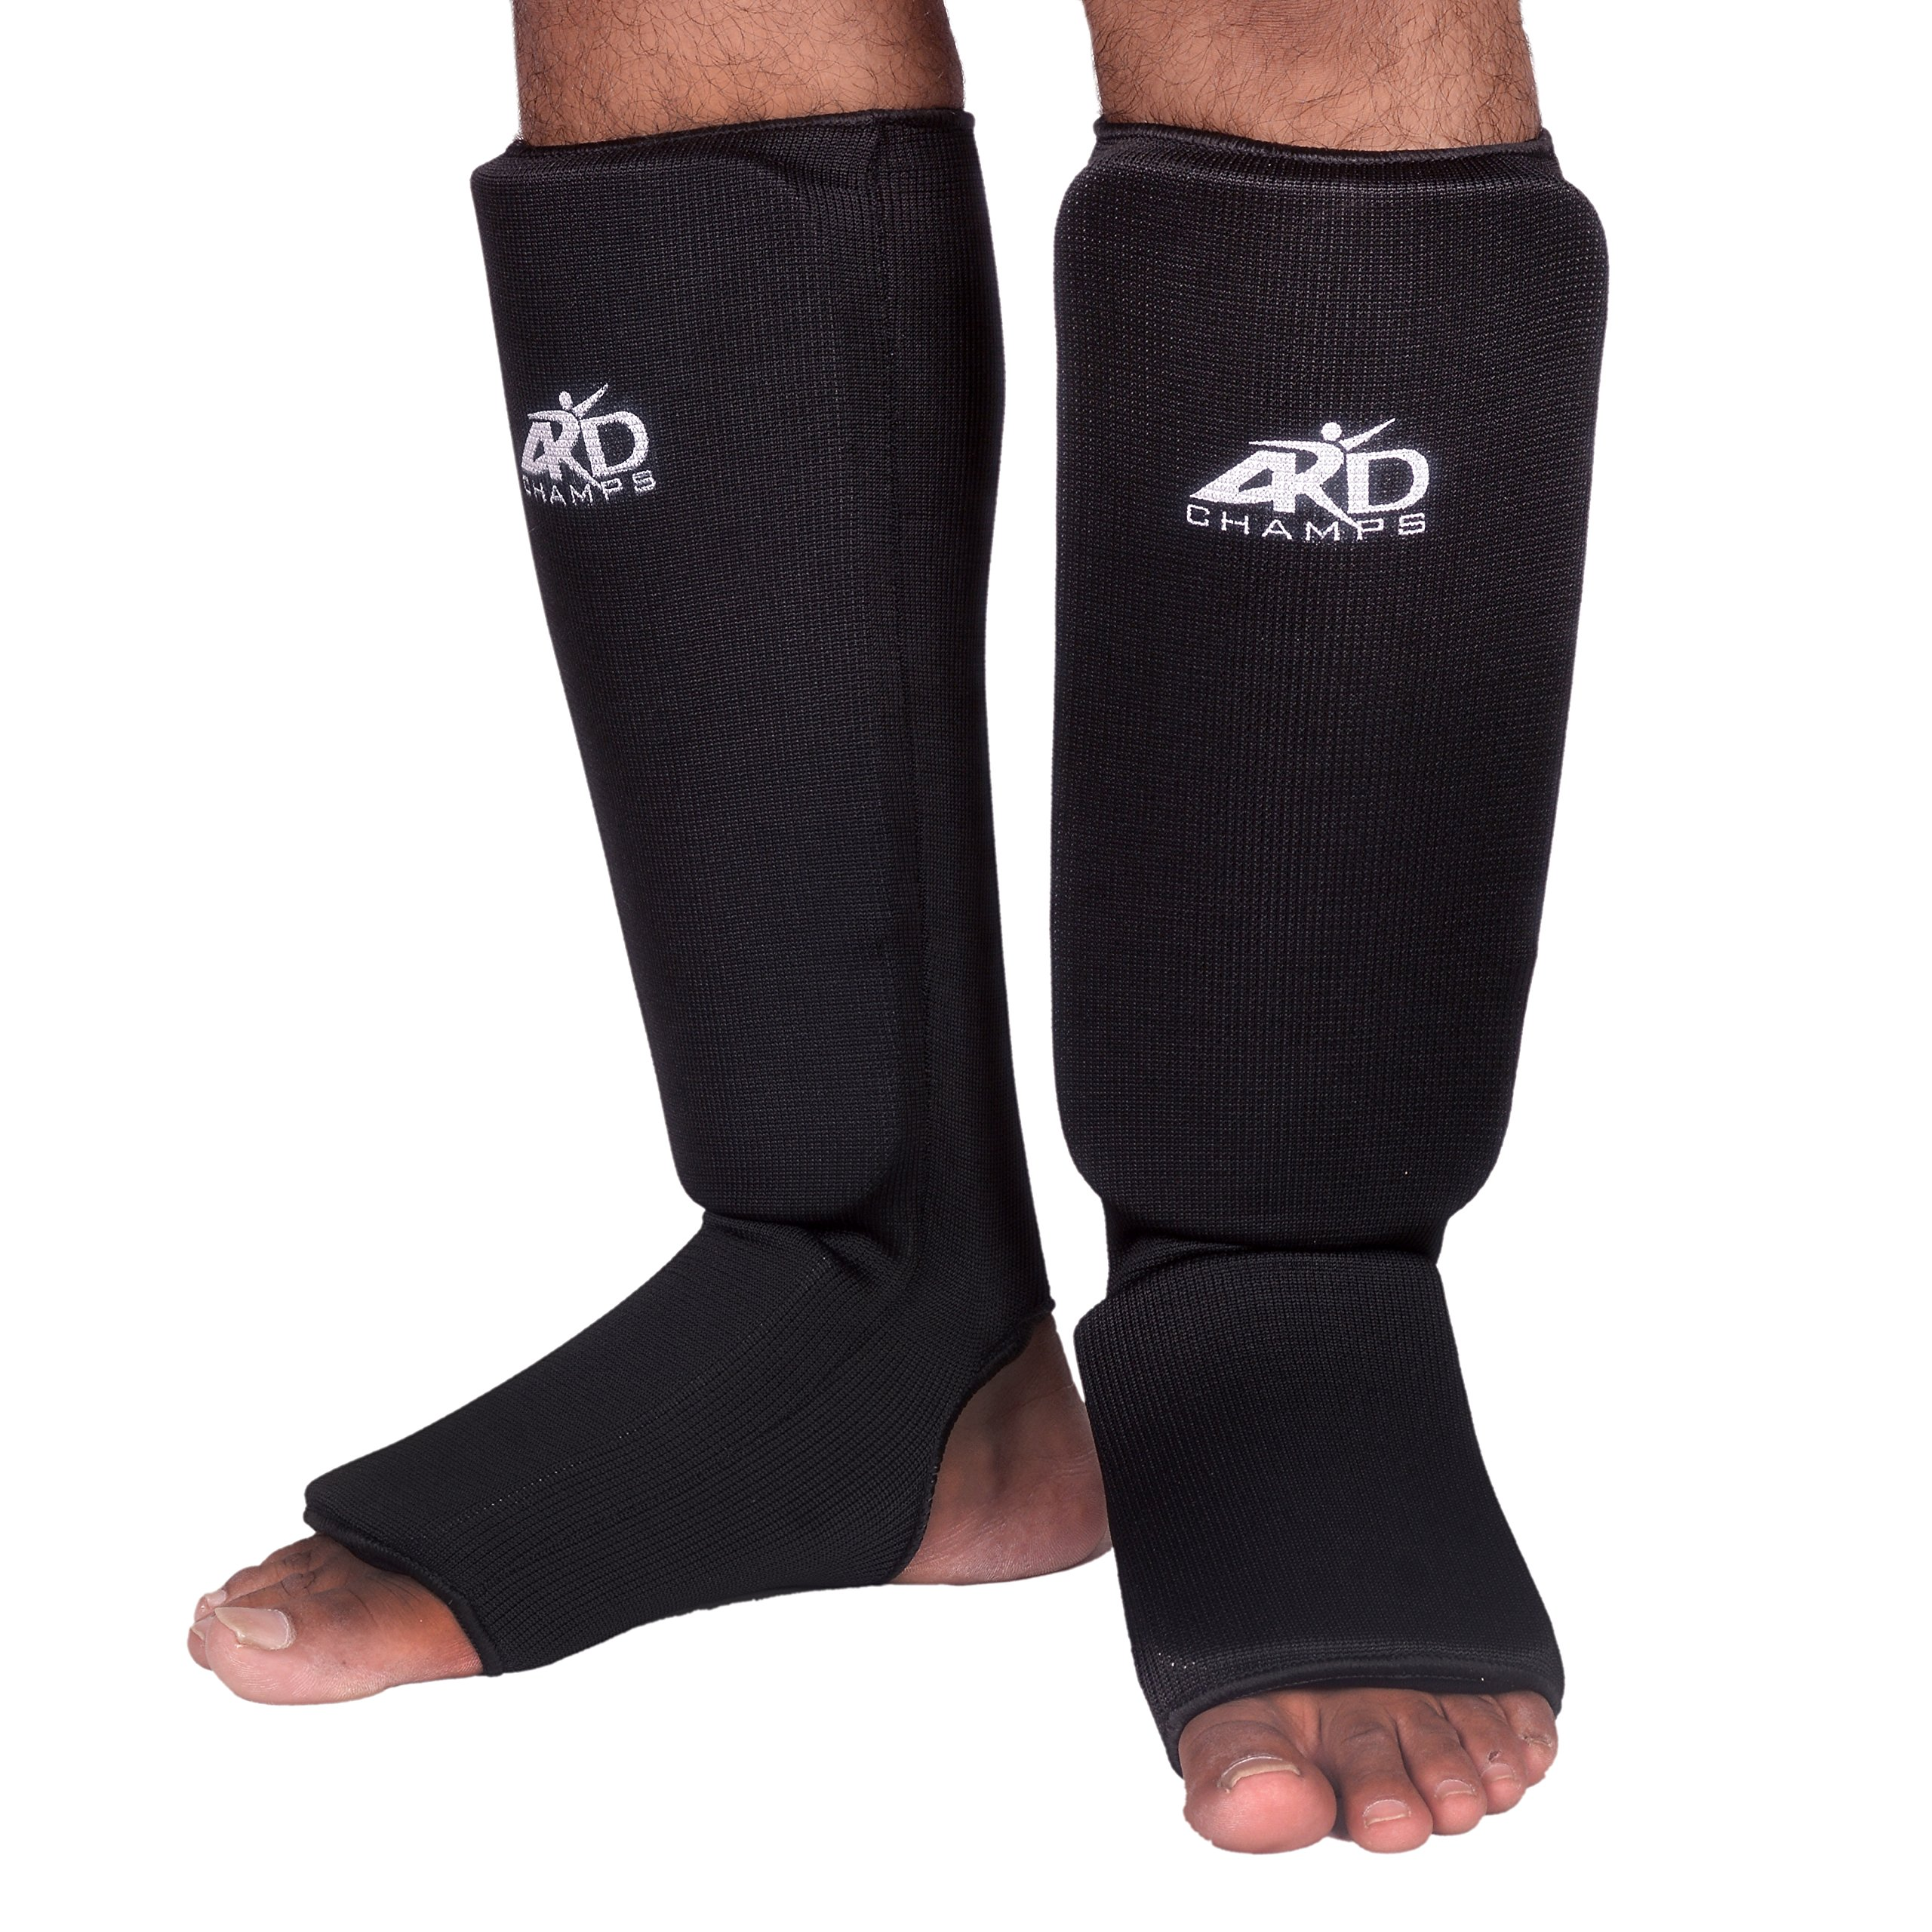 ARD Shin Instep Protectors, Guards Pads Boxing, MMA, Muay Thai (Black, Large) by ARD-Champs